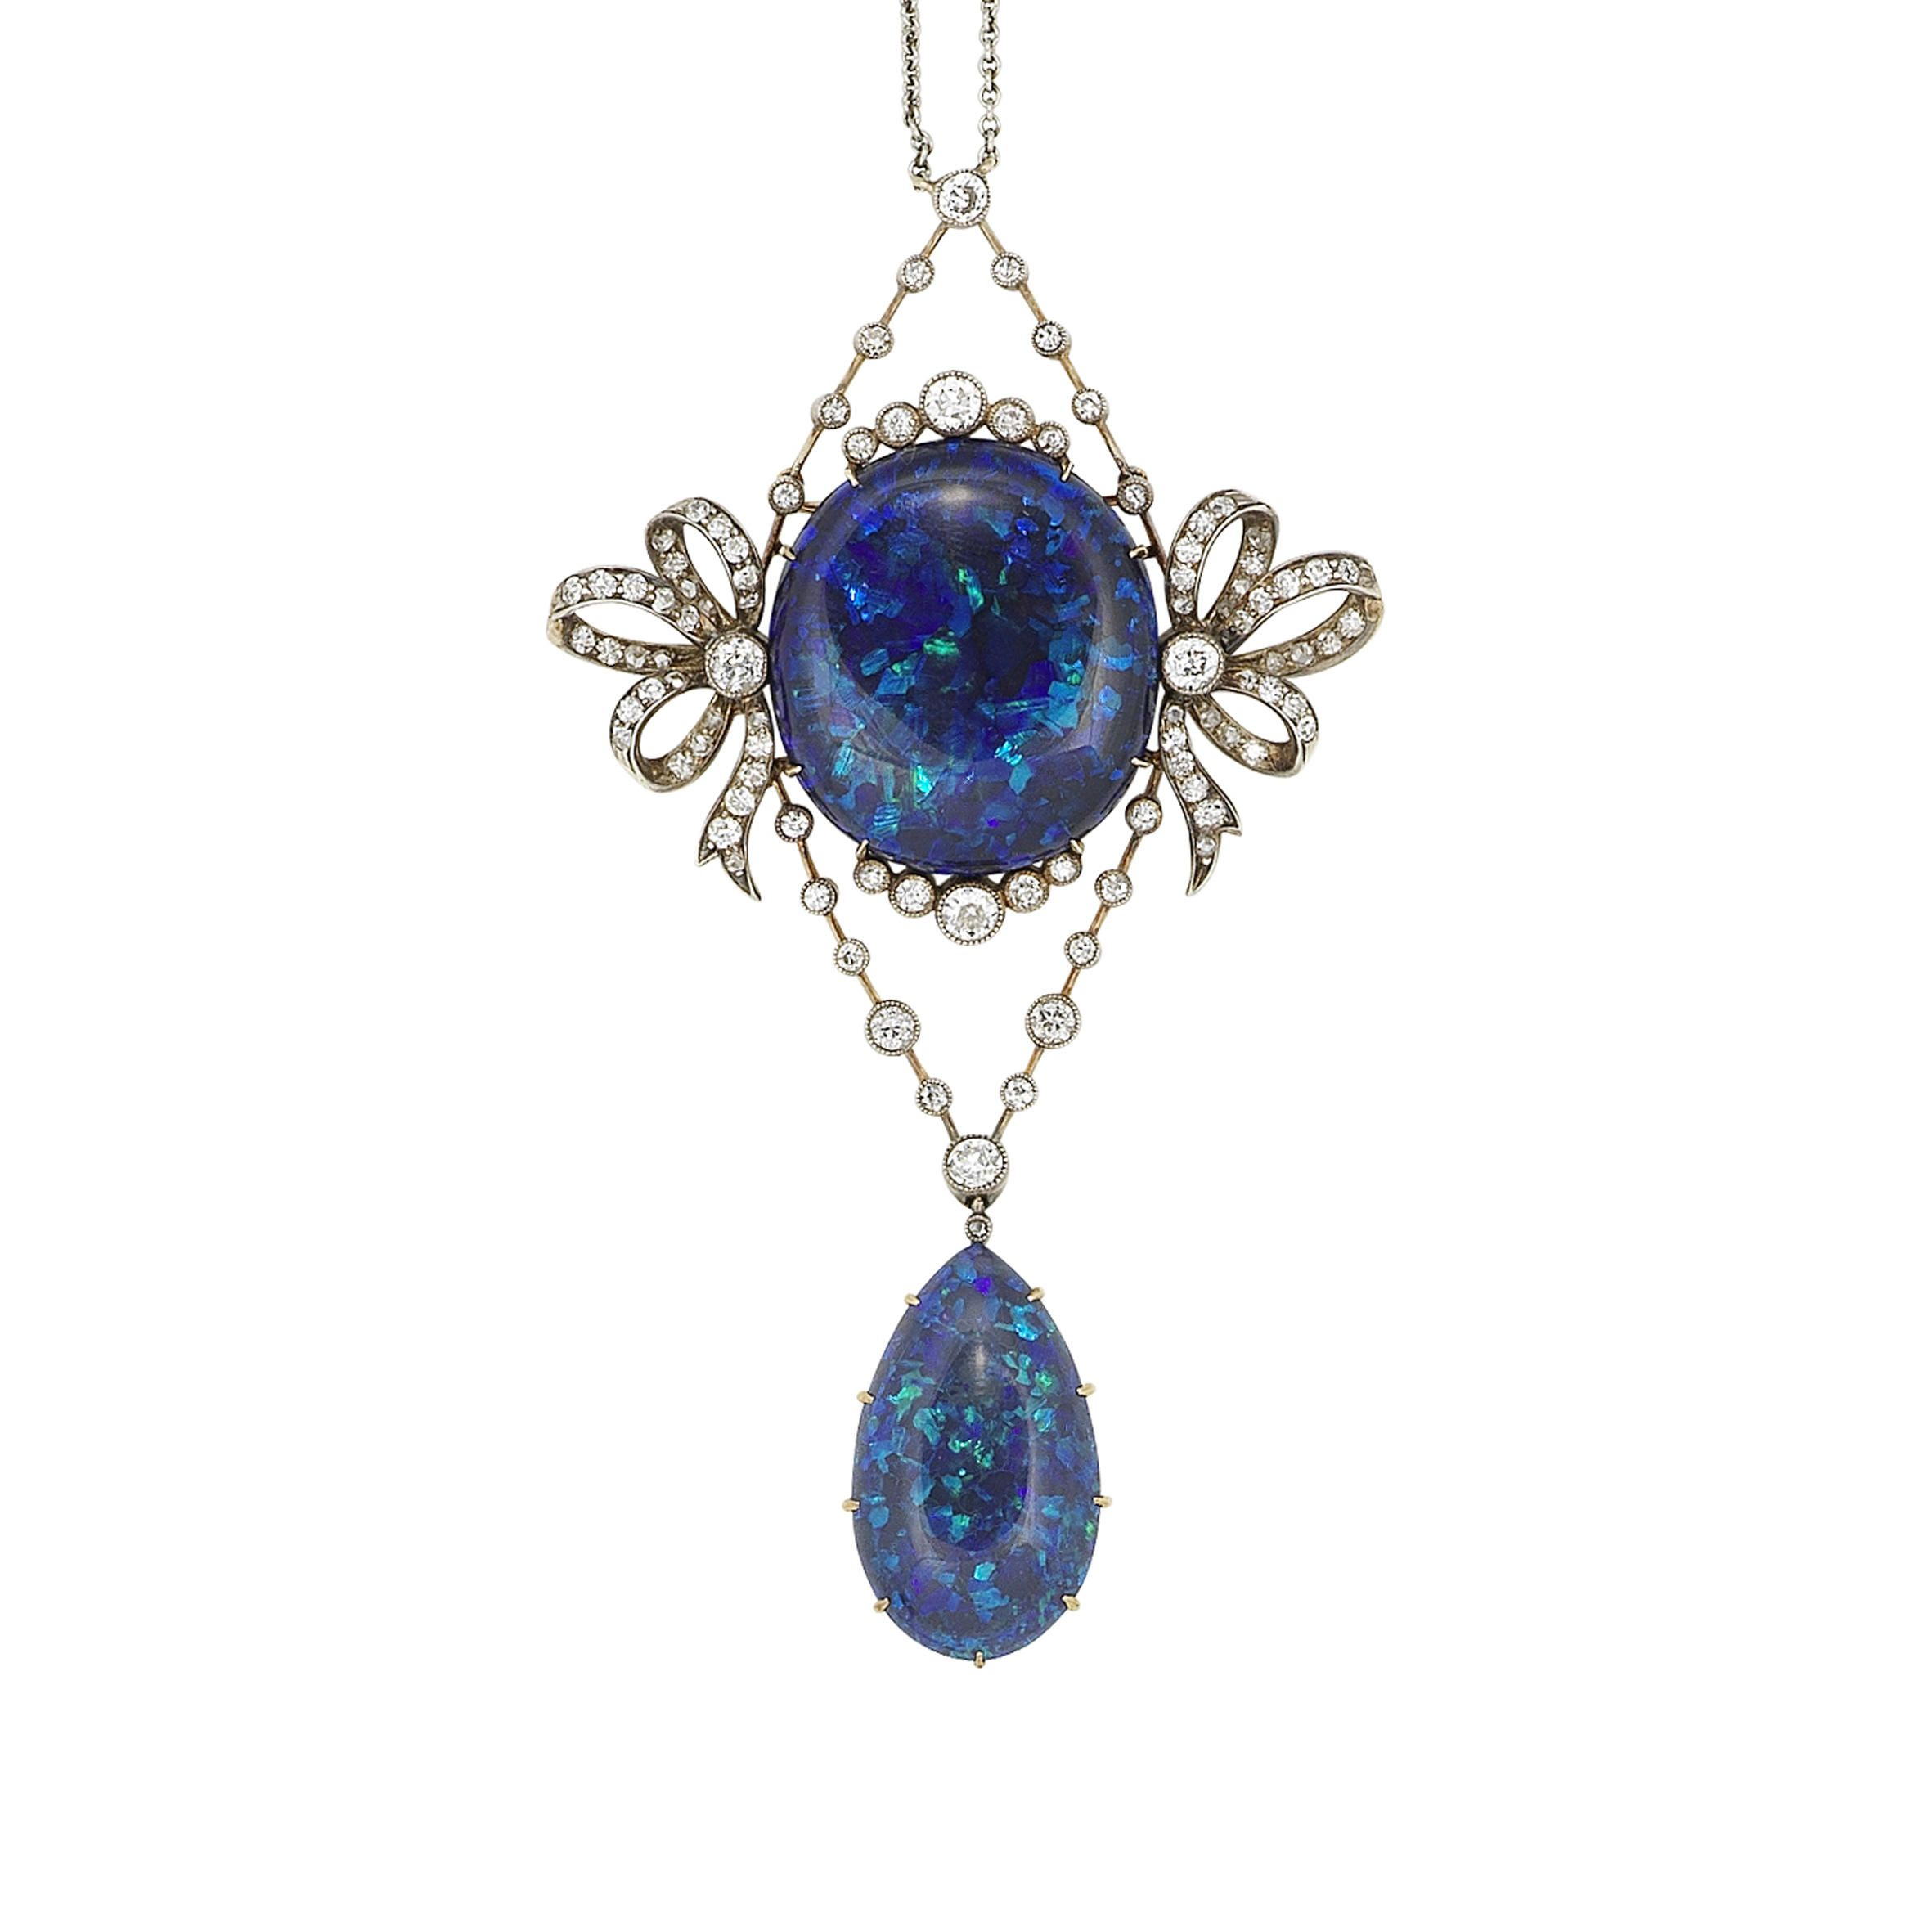 A belle époque black opal and diamond pendant necklace circa